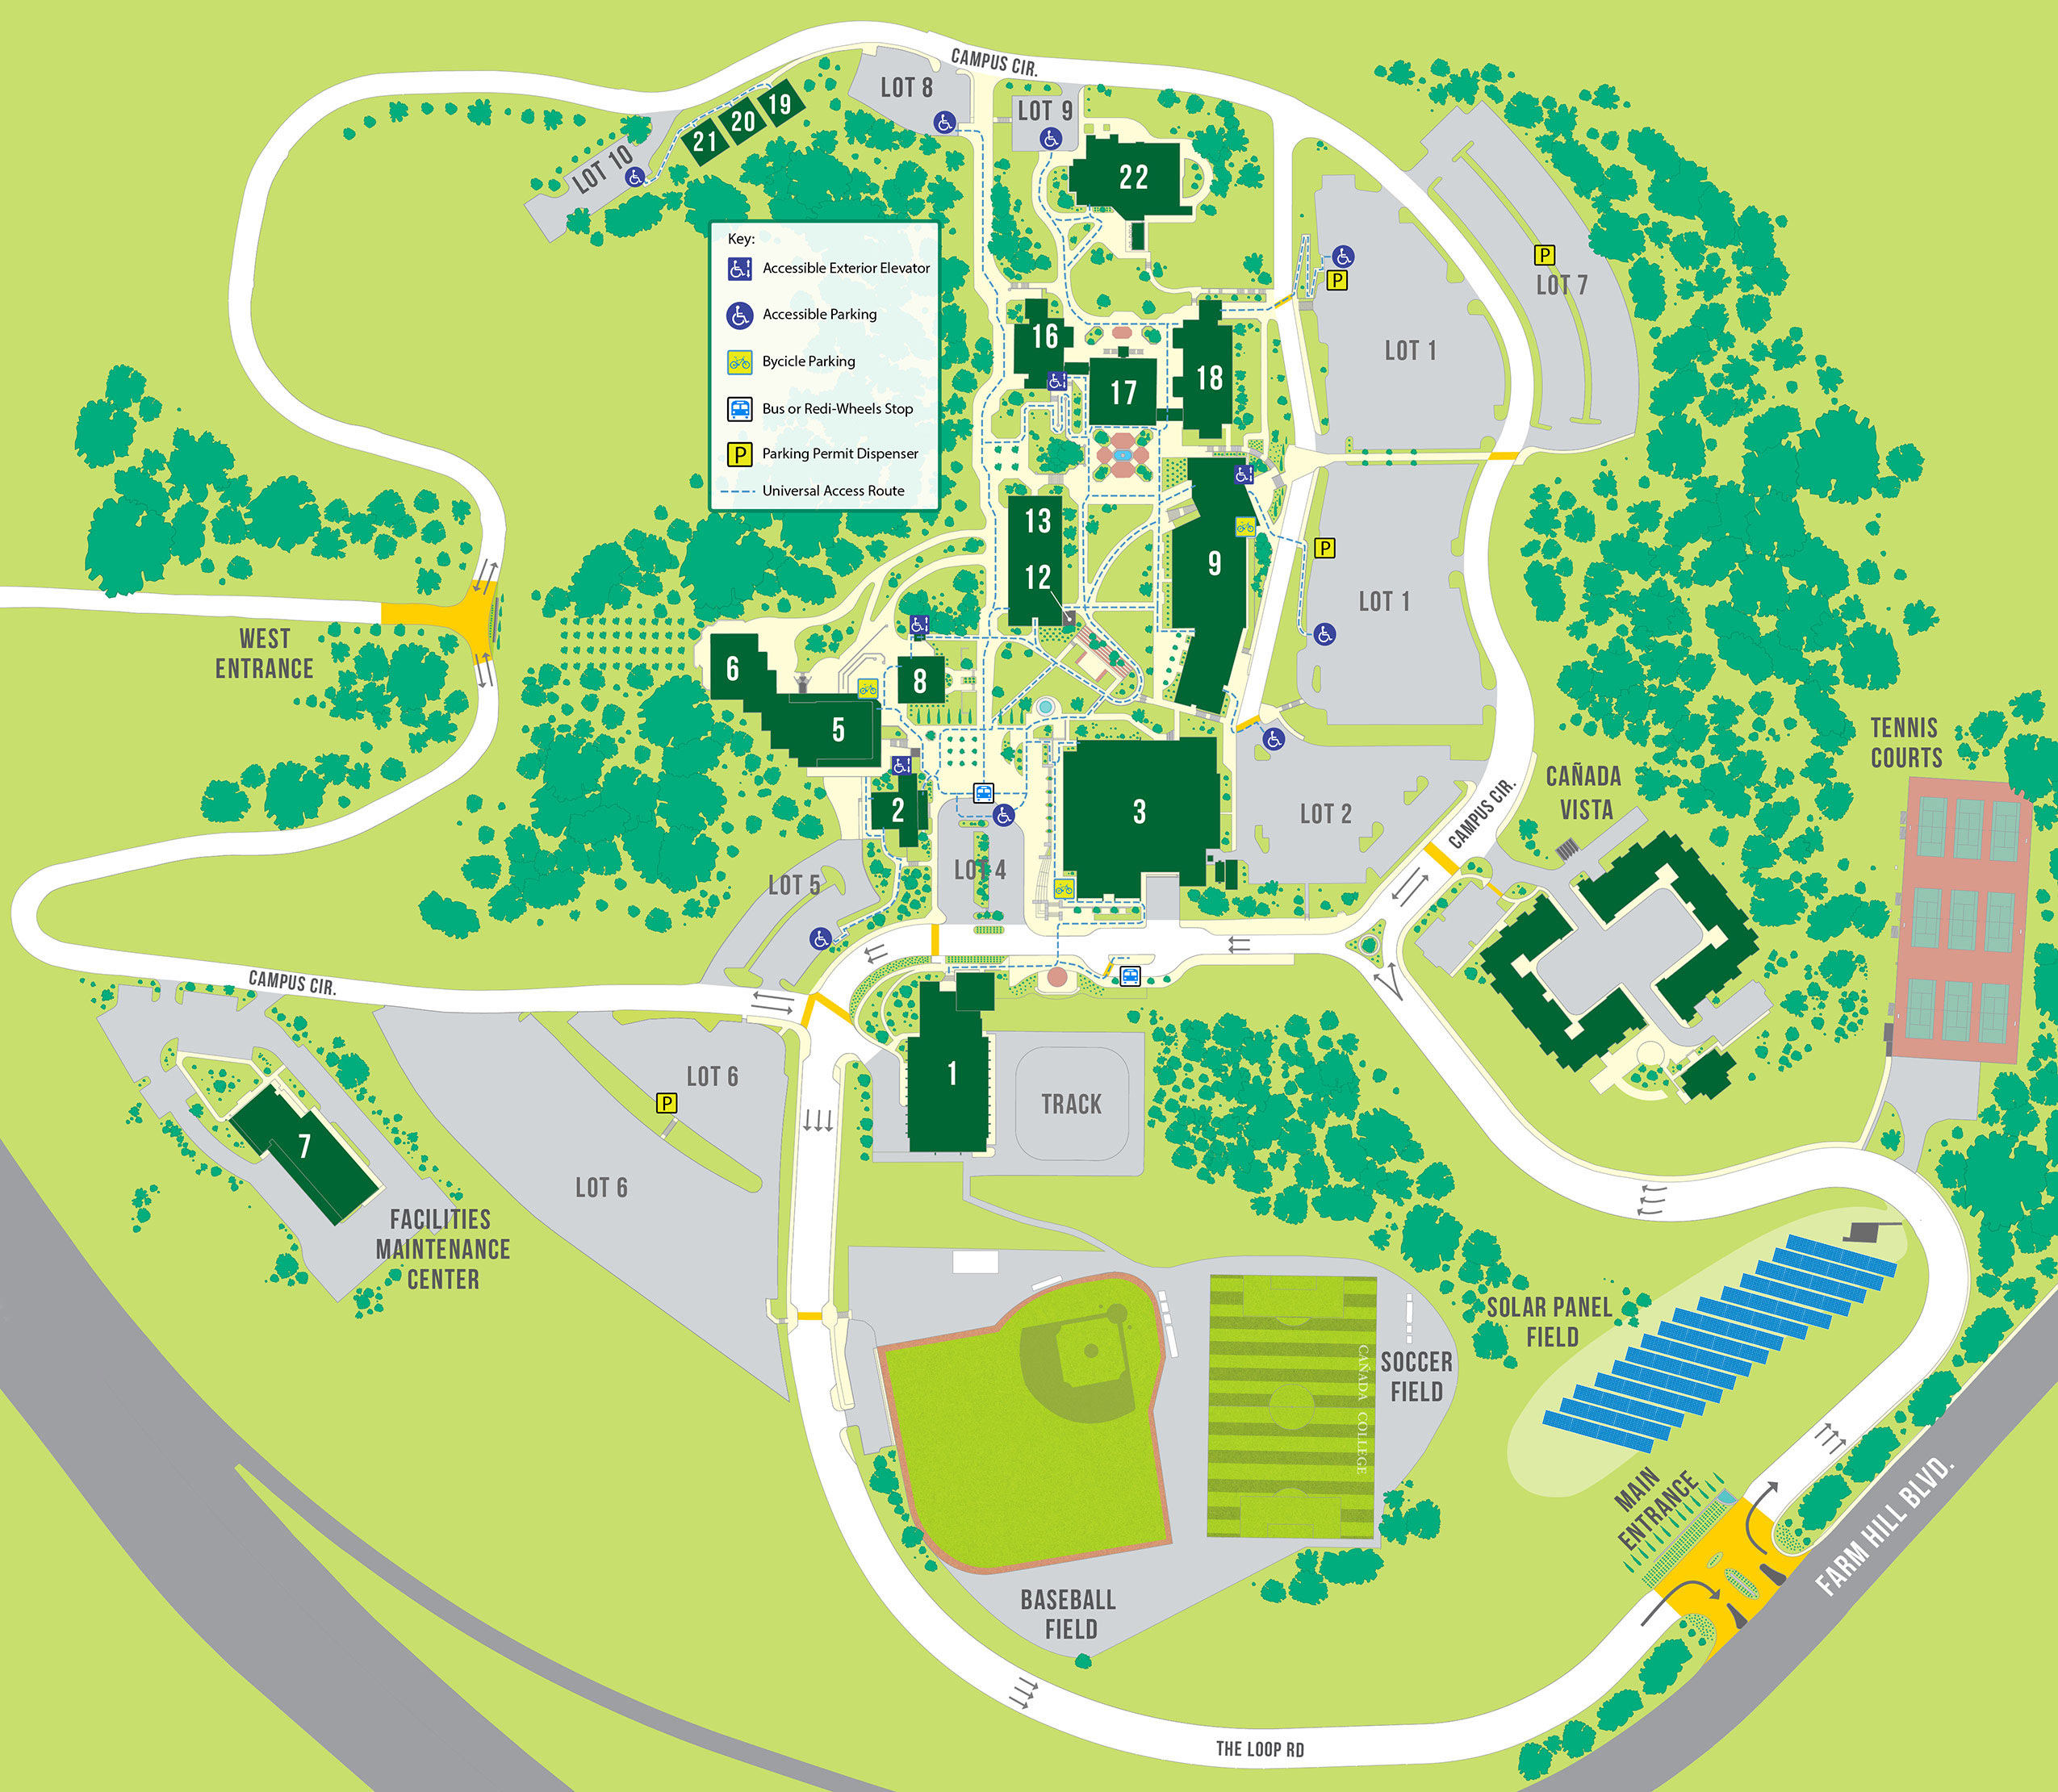 calvin college campus map Campus map find your way around campus visitors alumni calvin college calvin college 3201 burton se grand rapids, mi 49546.